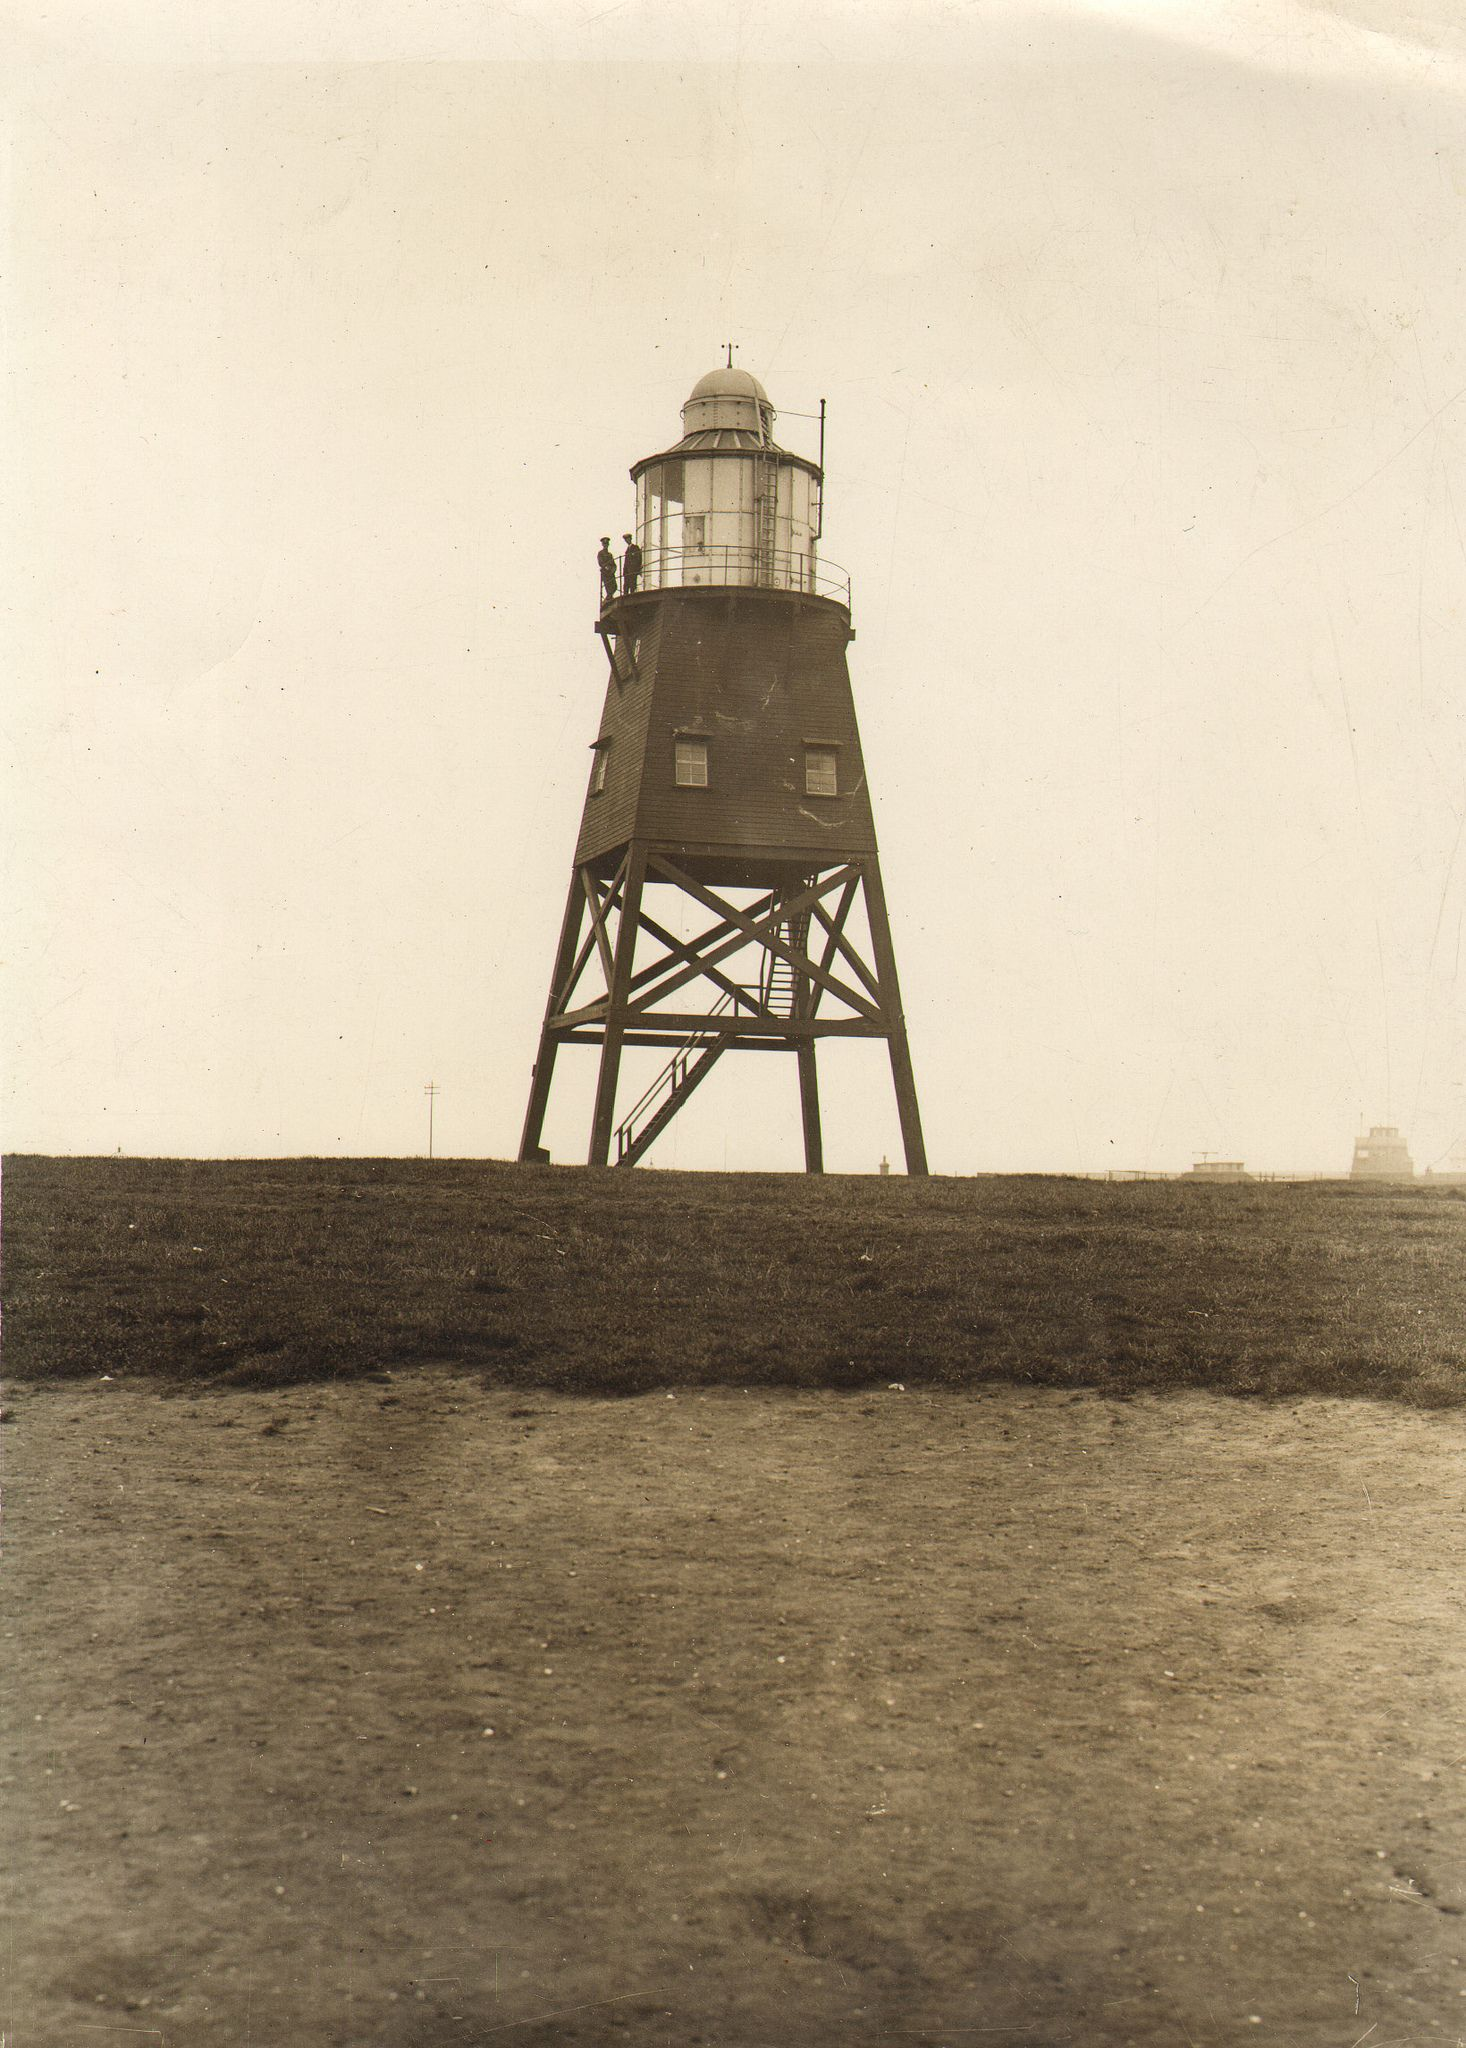 This is a photograph of a temporary lighthouse in Hartlepool.  Built in 1847 the wooden tower was in service until June 14th 1927.  On that day the new all electric, automatic Heugh light came into service.  Photograph Collection No : 1827  Images from Hartlepool Cultural Services that are part of The Commons on Flickr are labeled 'no known copyright restrictions' indicating that Hartlepool Cultural Services is unaware of any current copyright restrictions on these images either because the…